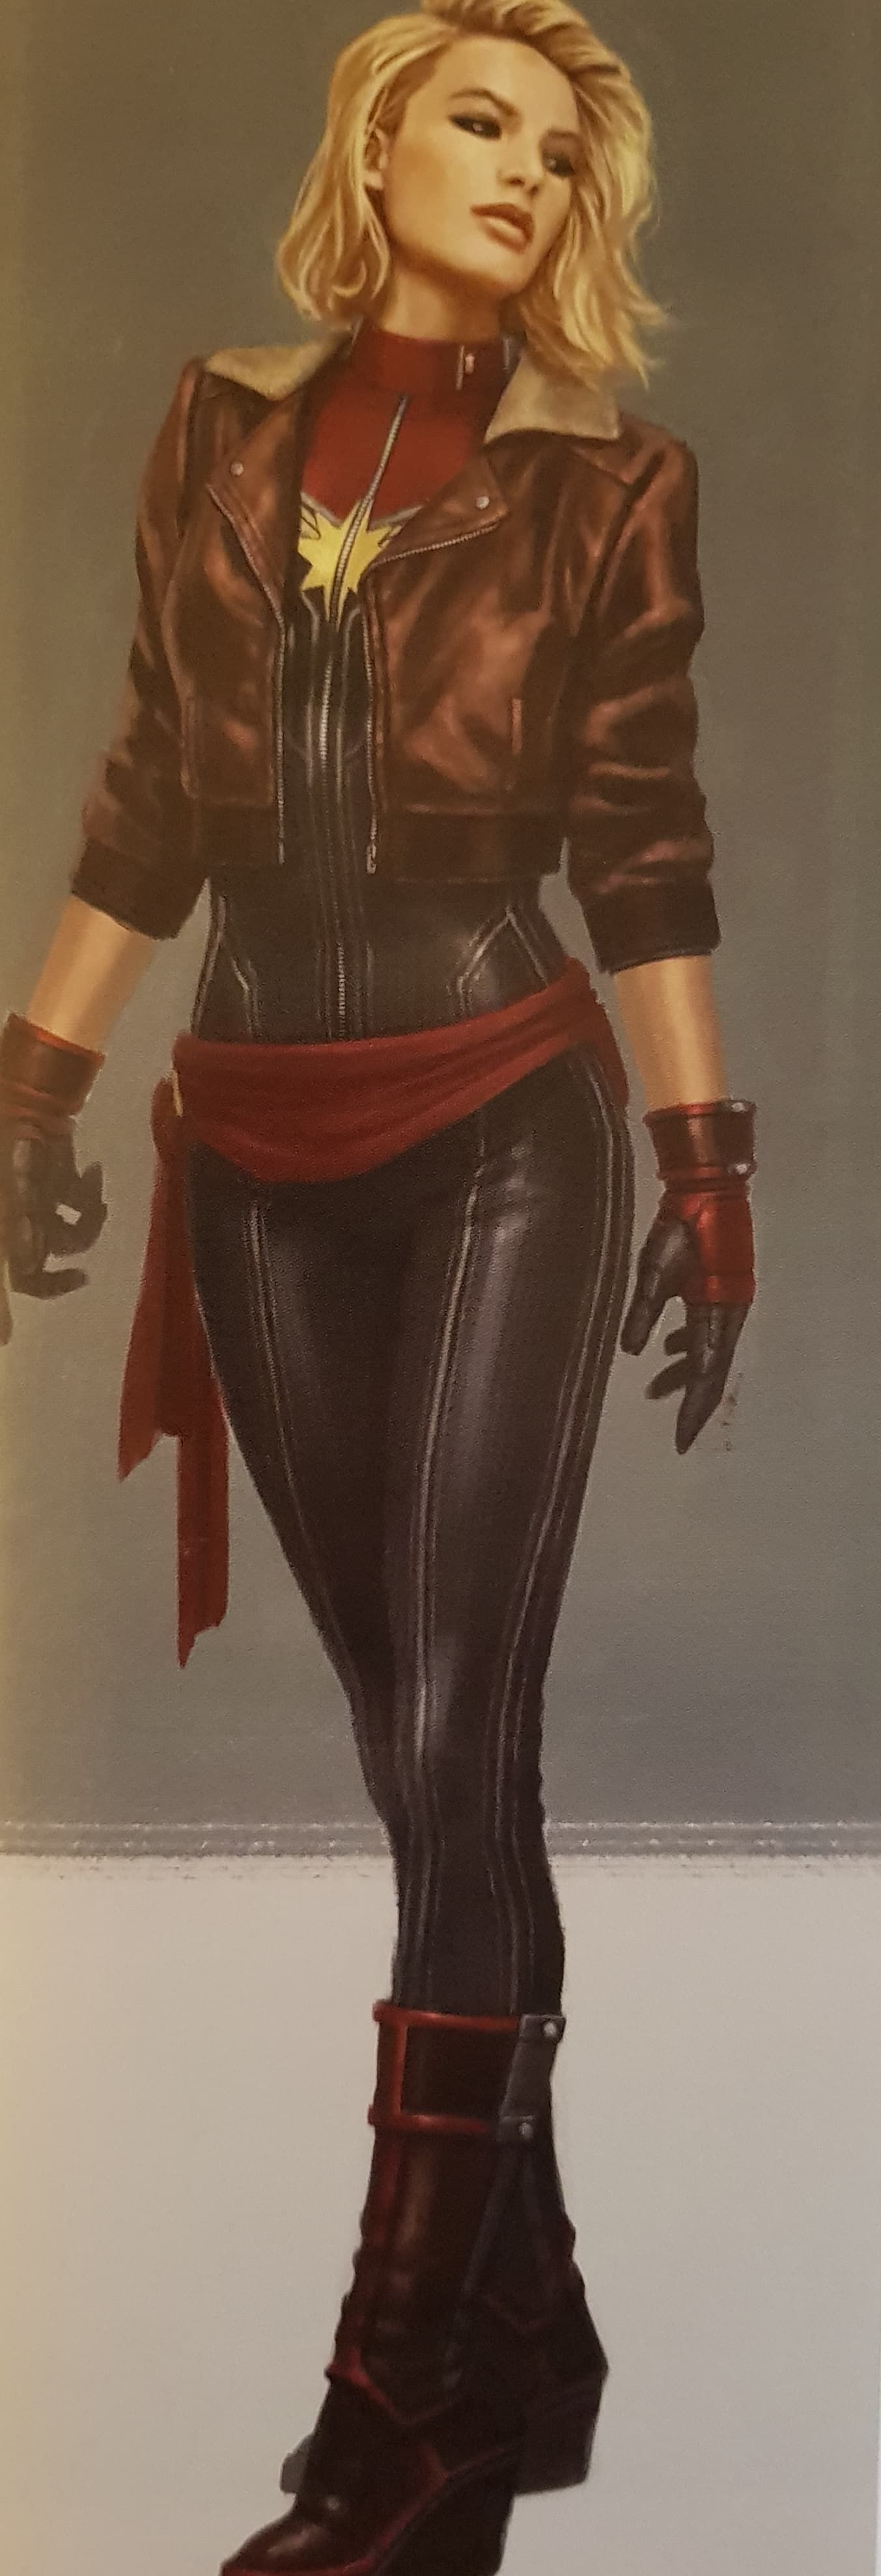 CAPTAIN MARVEL Concept Art Features Some Crazy Alternate Suit Designs And Her Binary Form